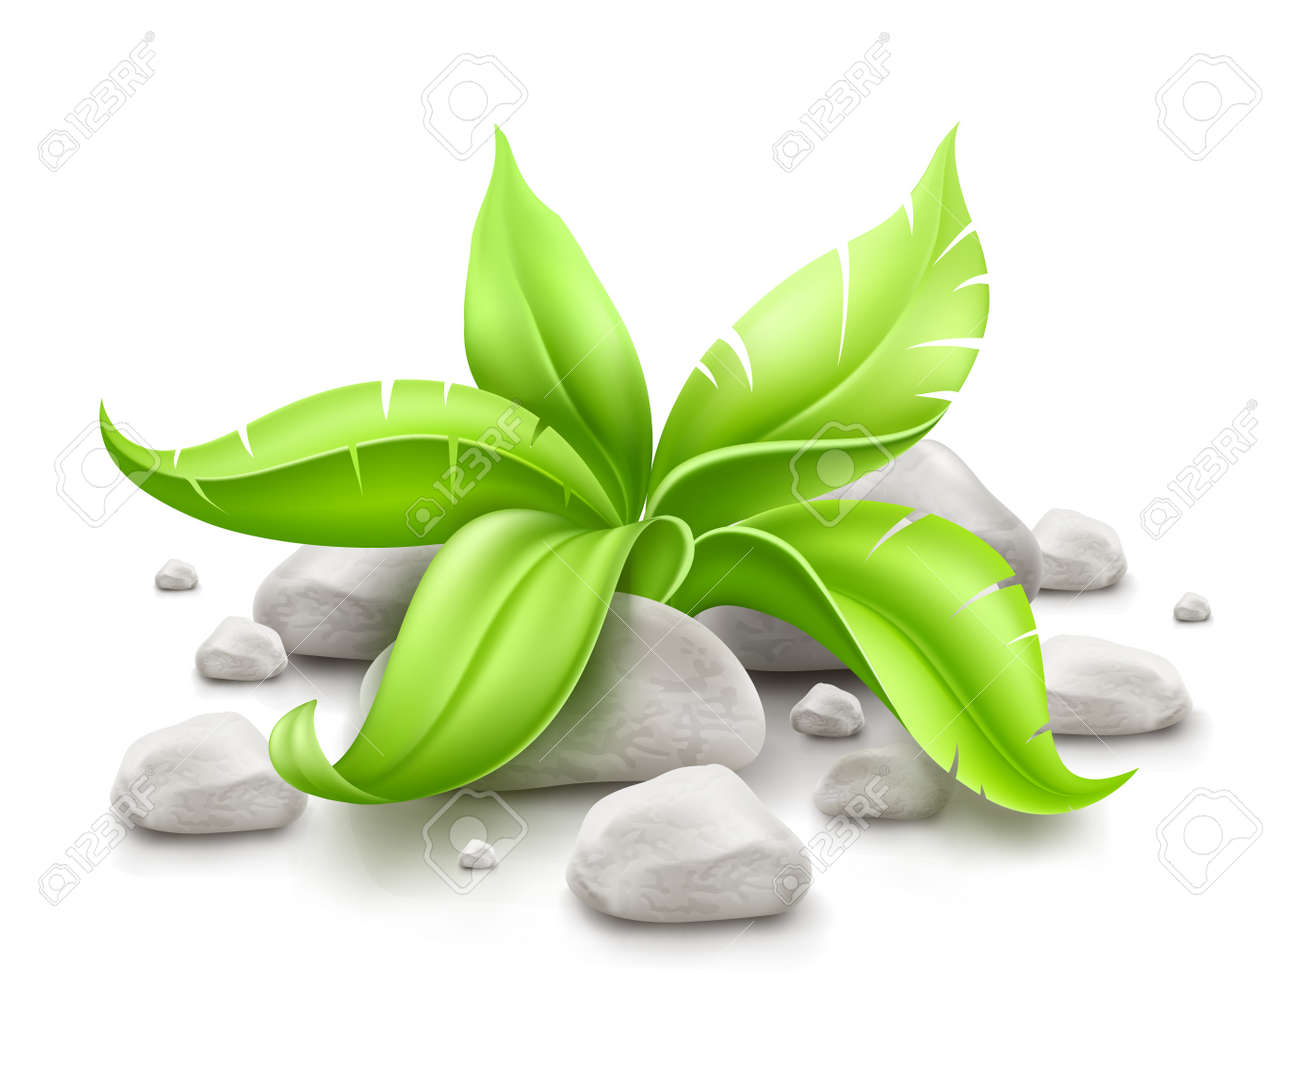 plant with green leaves in stones isolated on white background. EPS10 vector illustration. Gradient mesh used. Transparent objects used for shadows drawing. Stock Vector - 18703113